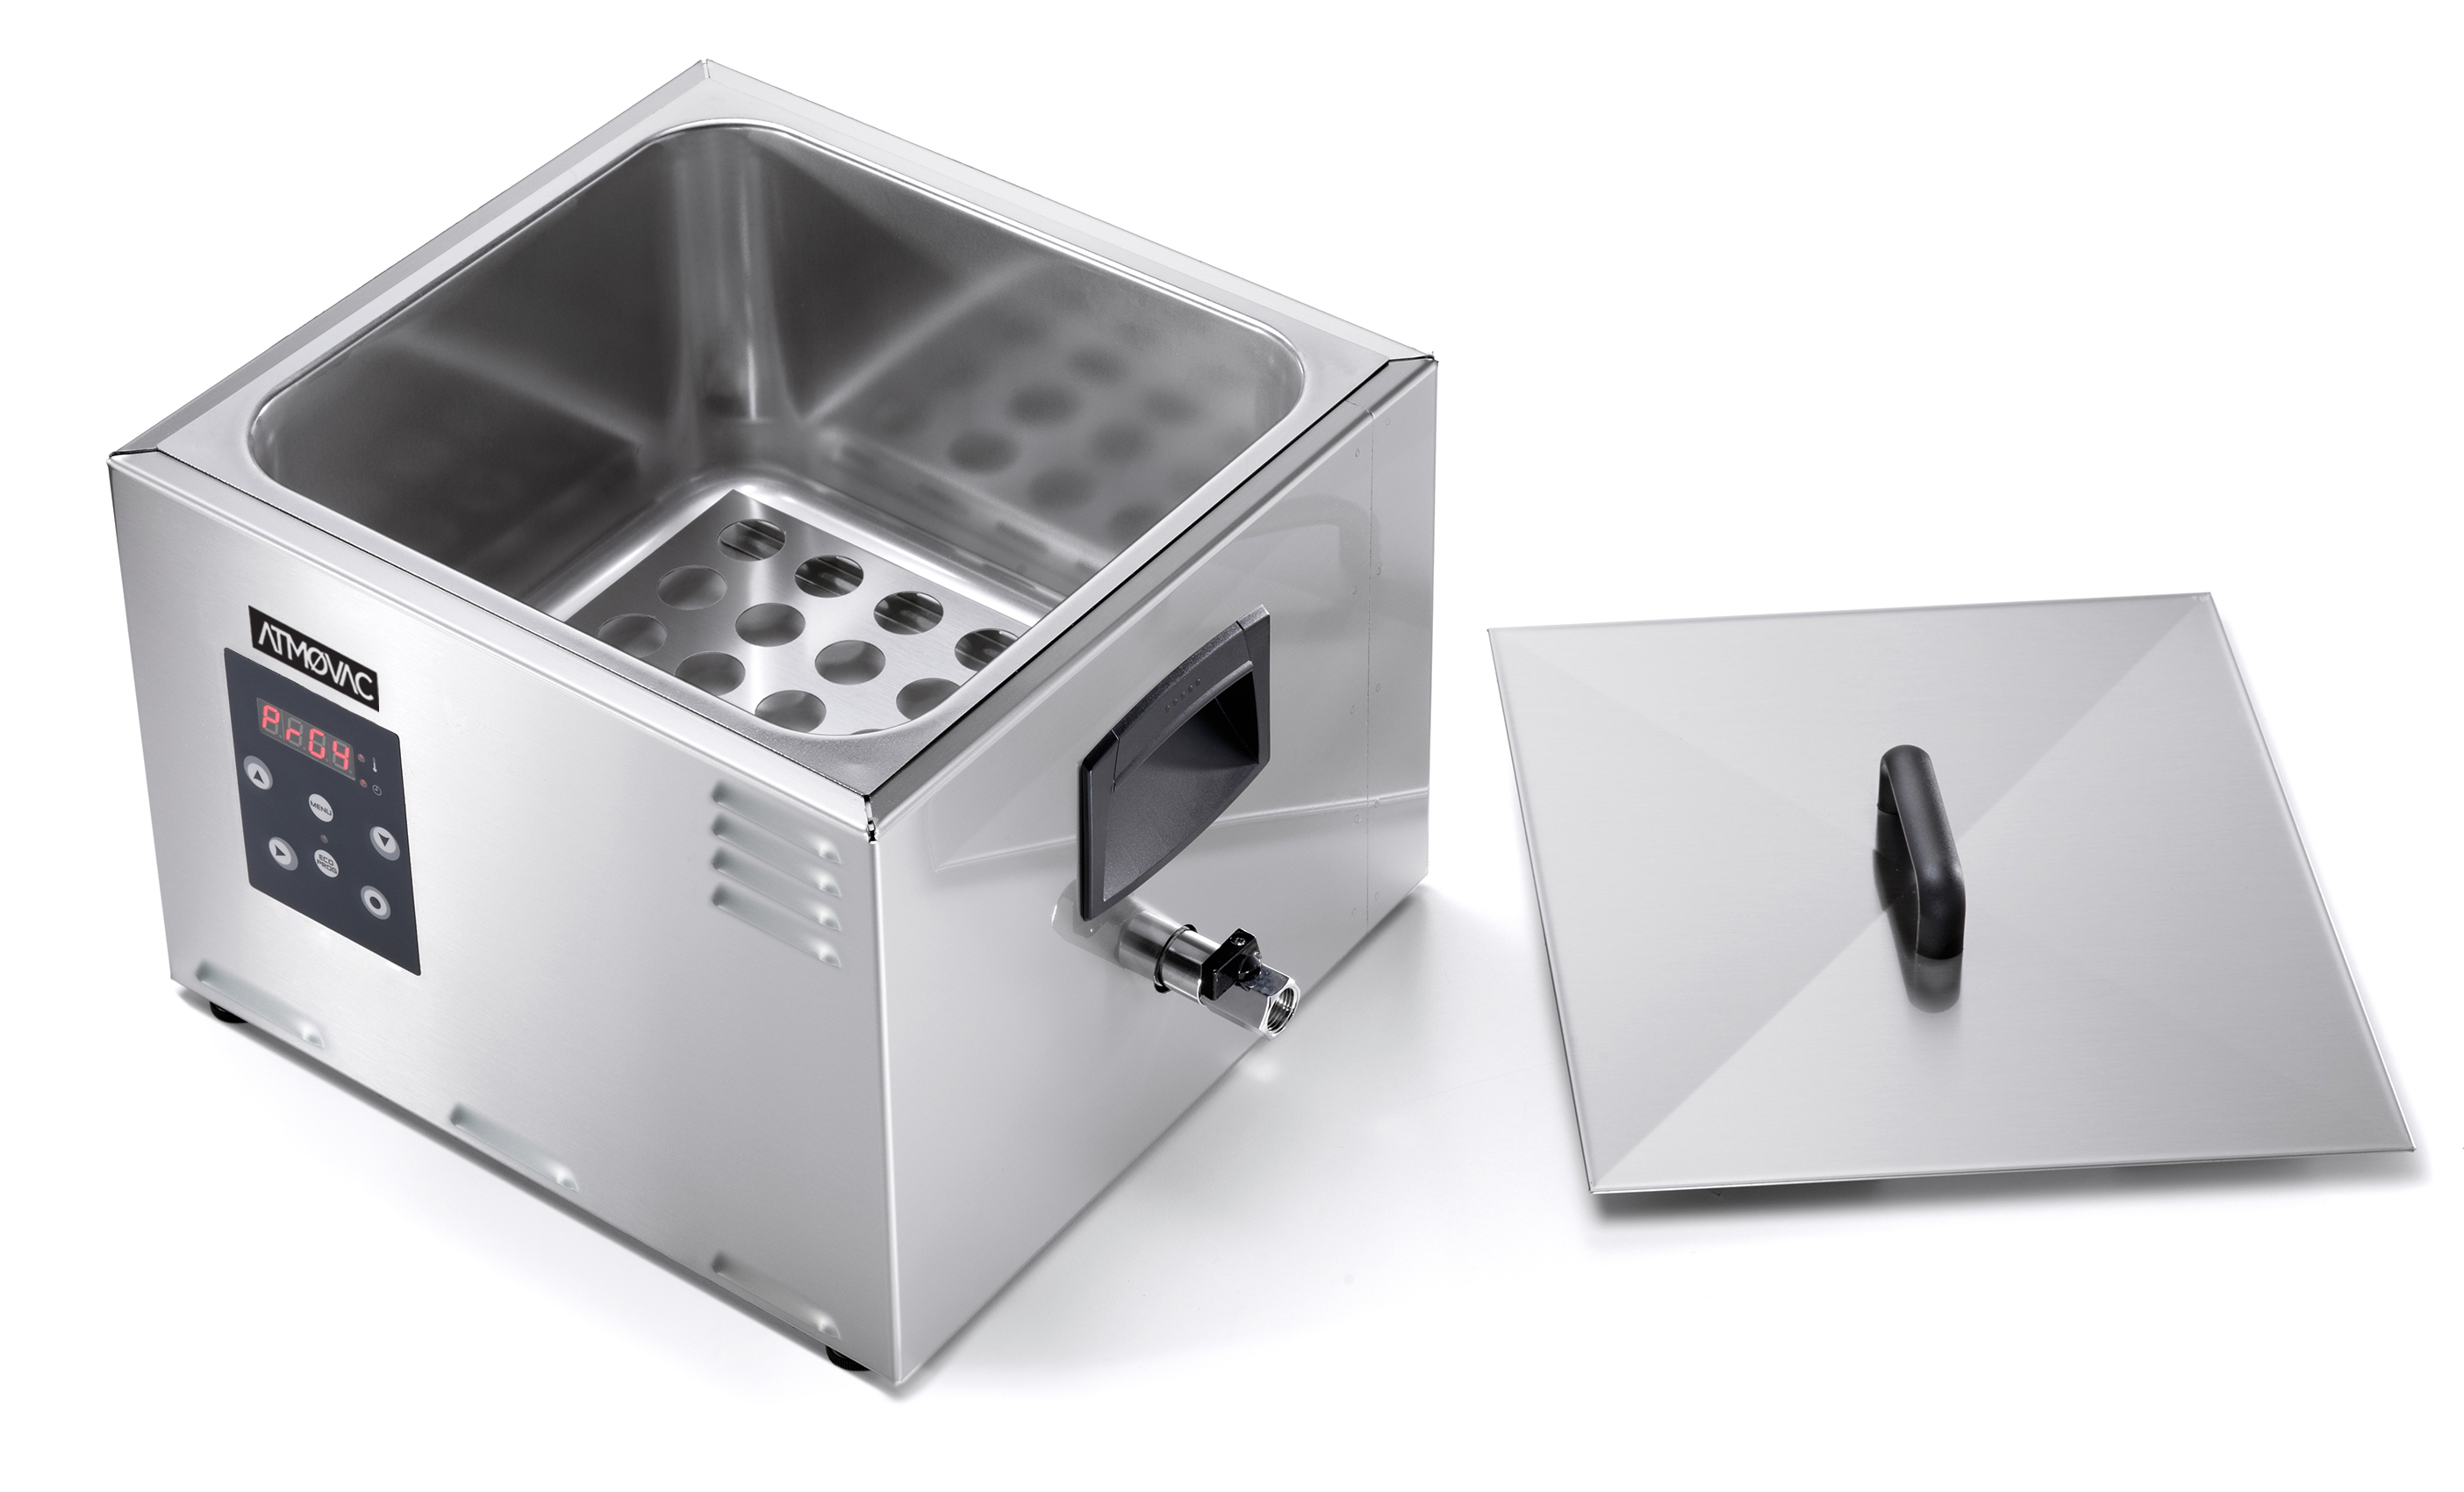 Eurodib USA SR23 sous-vide cooking